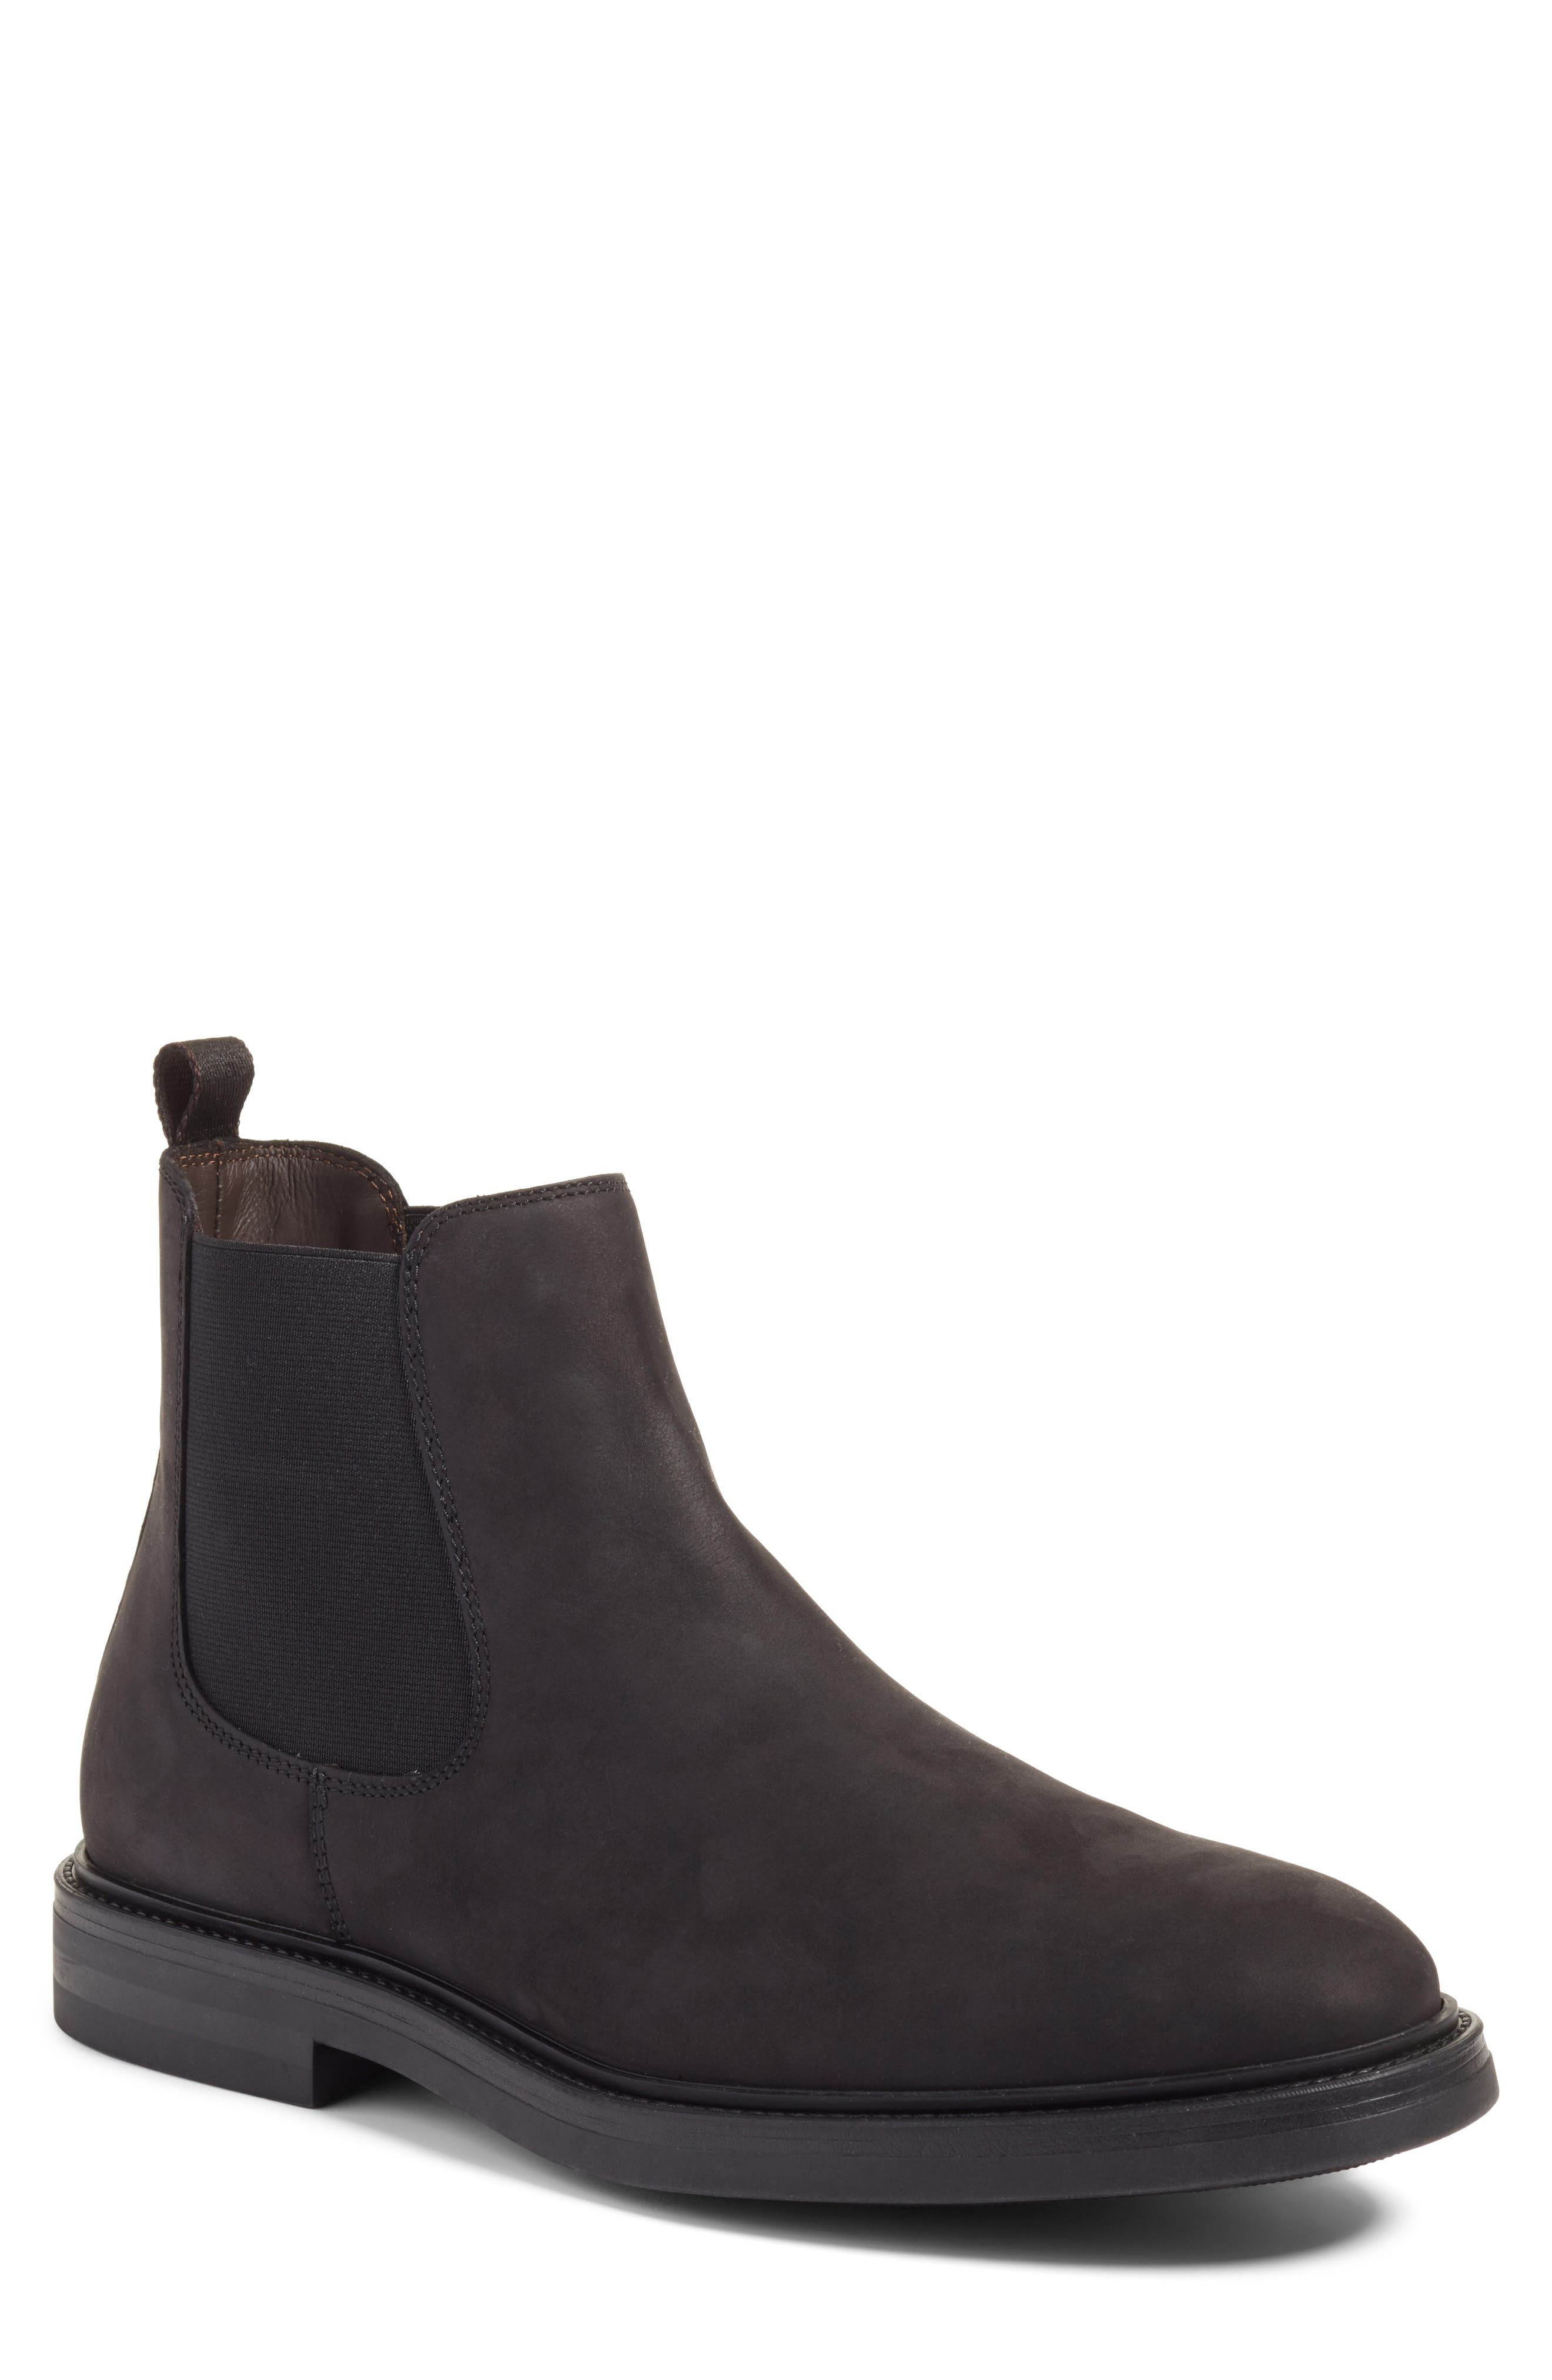 Chelsea Boot,                         Main,                         color, 002